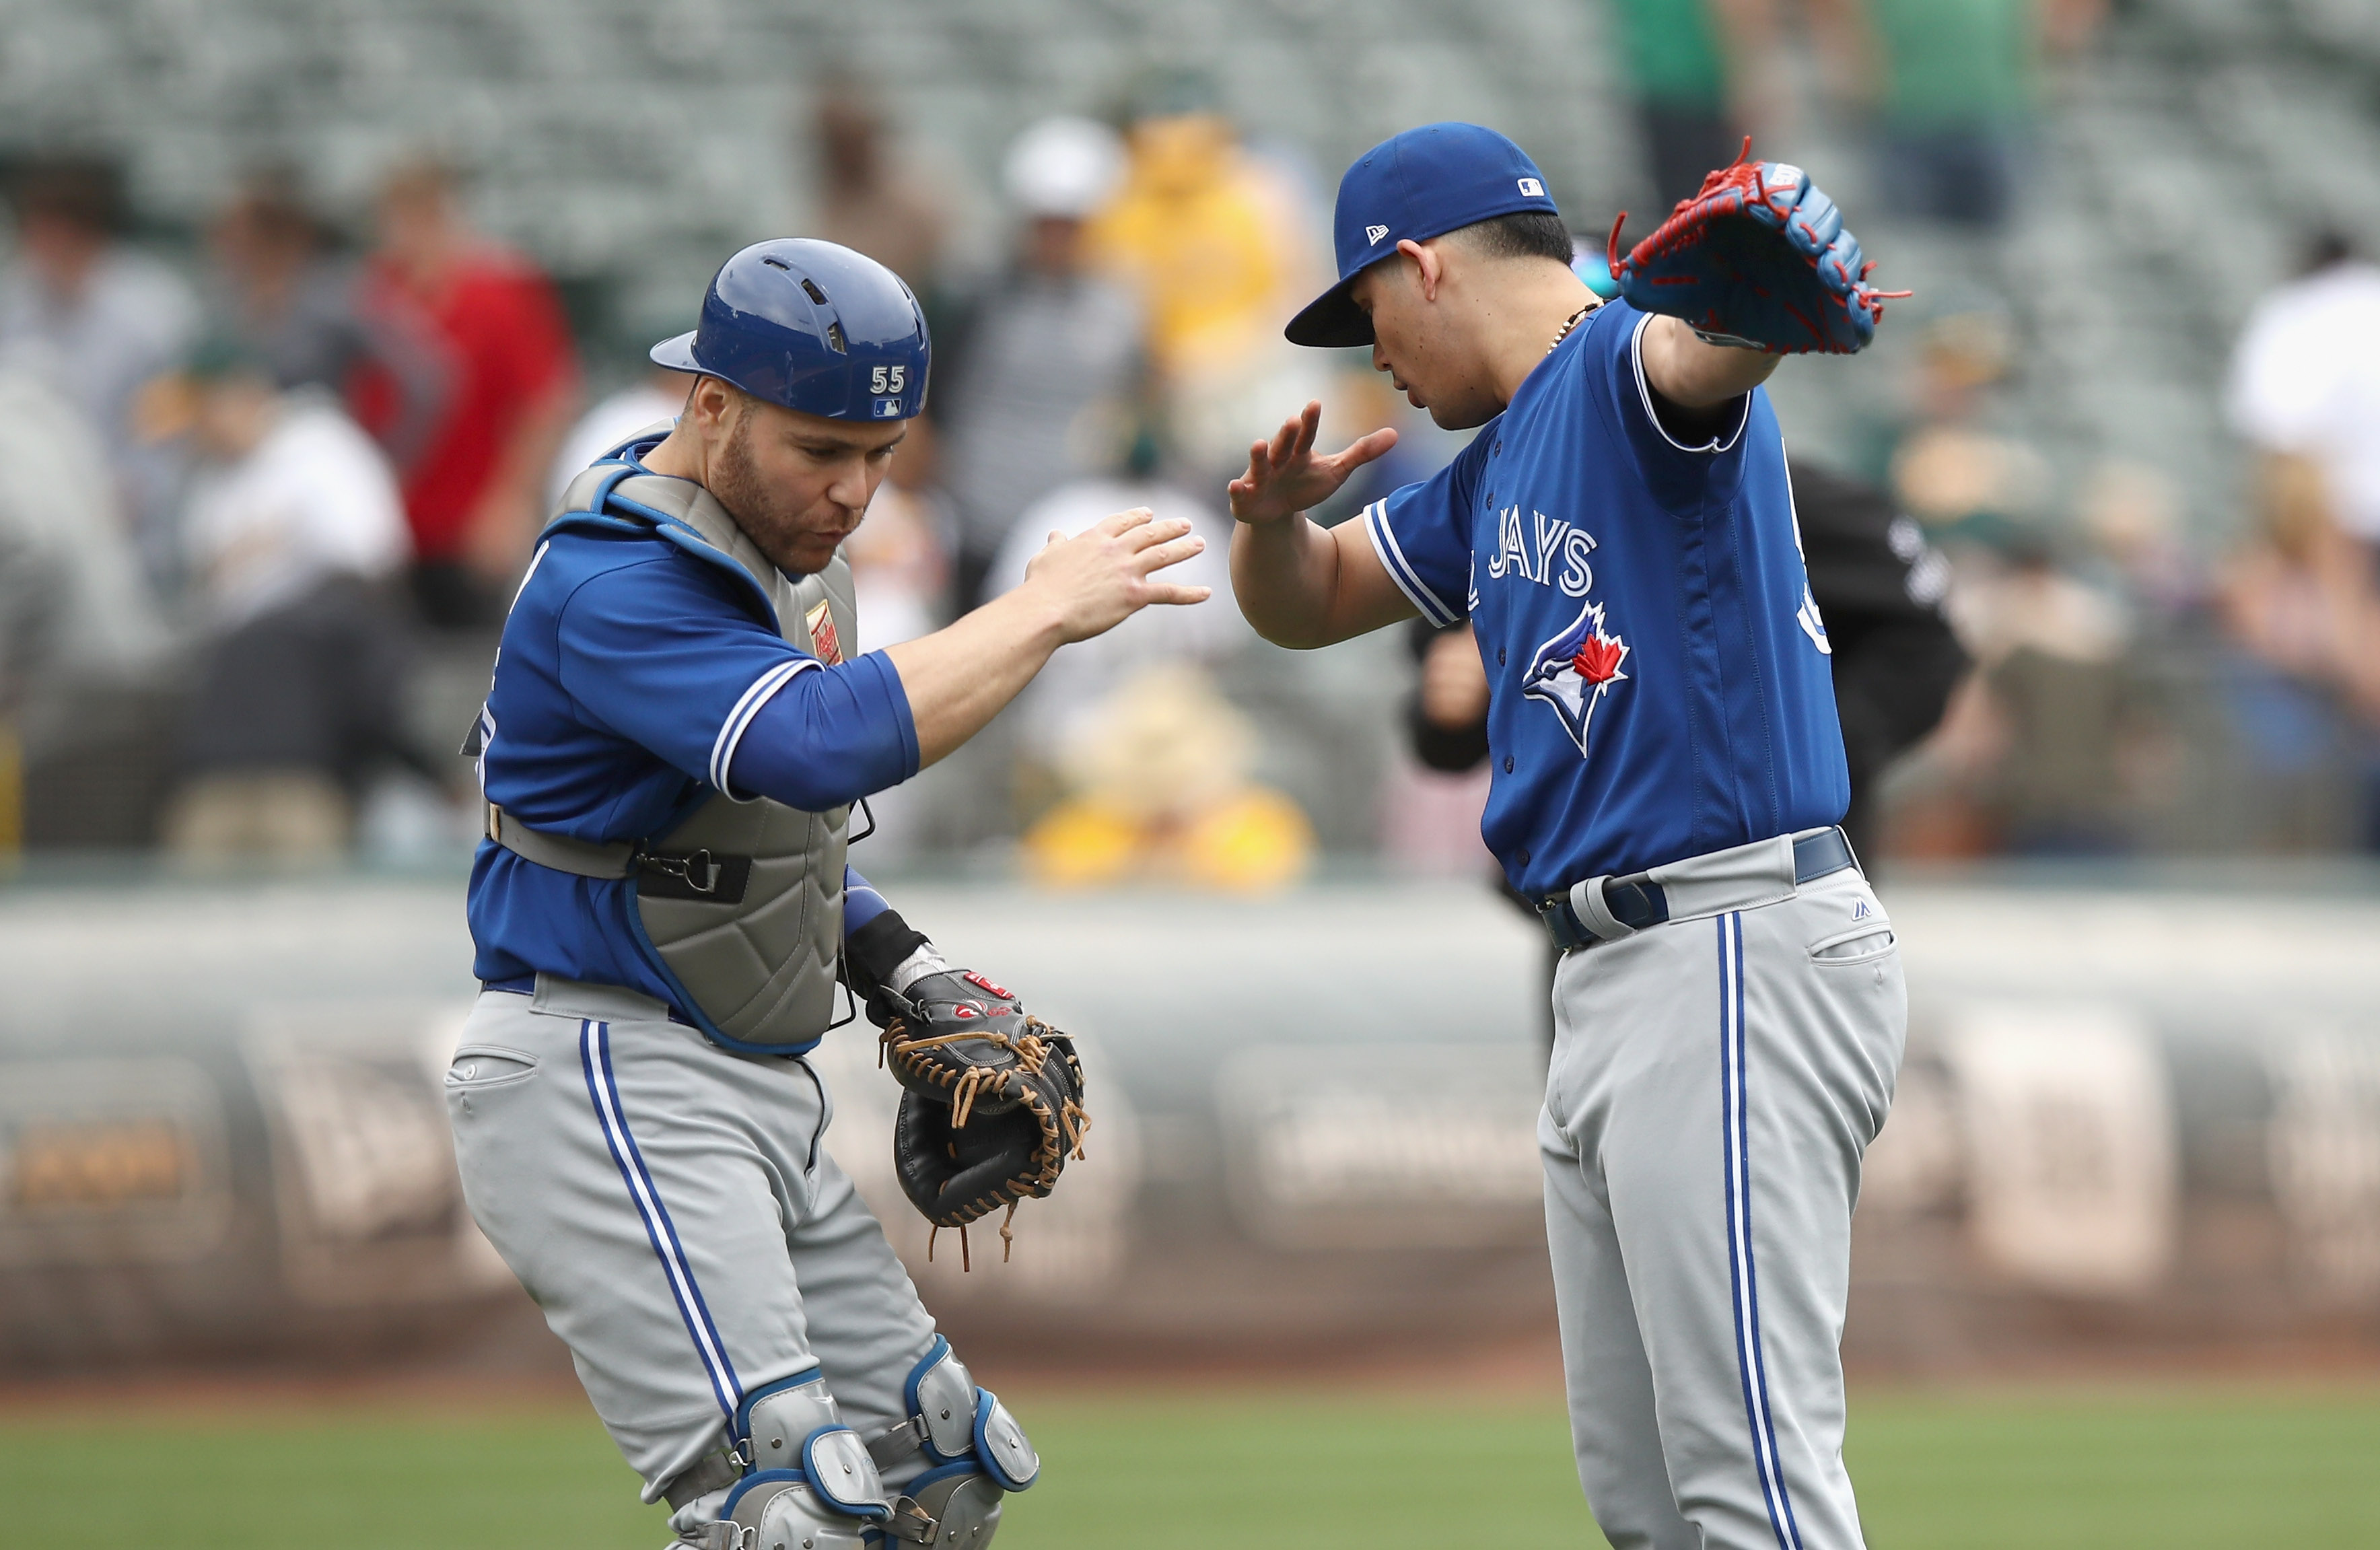 693555448-toronto-blue-jays-v-oakland-athletics.jpg